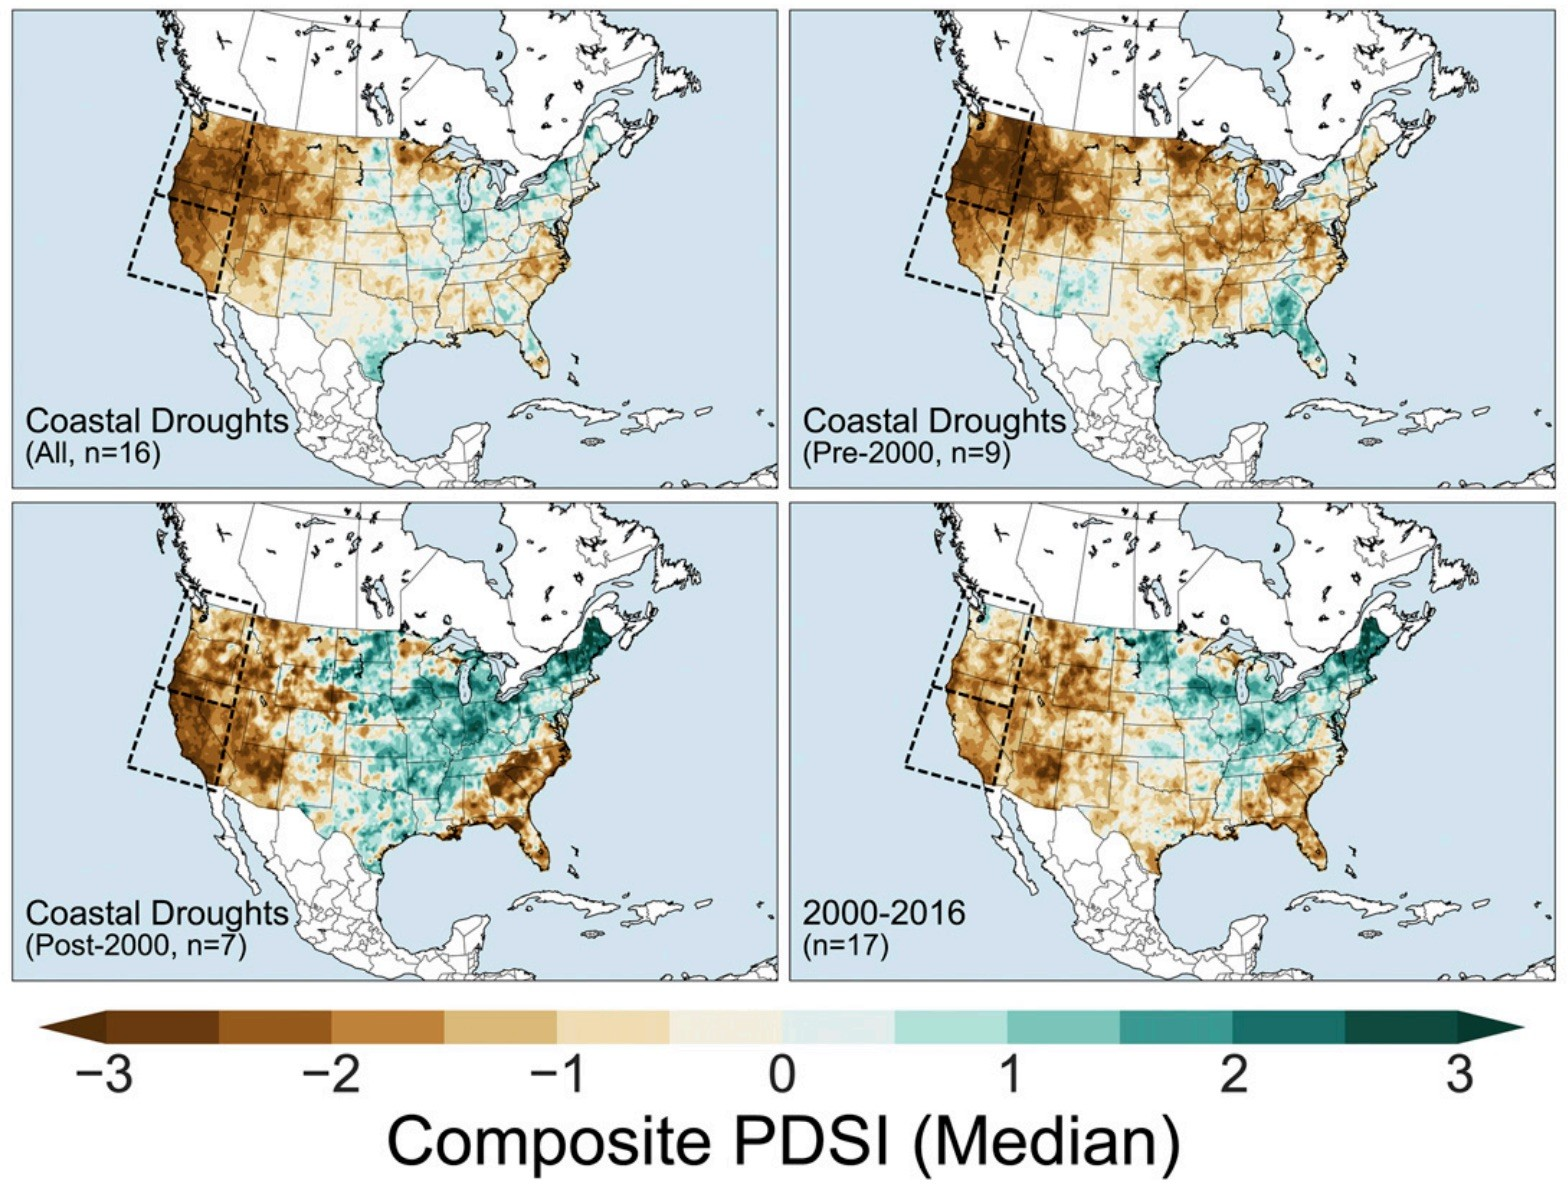 Coastal droughts composites during 20th century (also subsets shown before and after 2000)